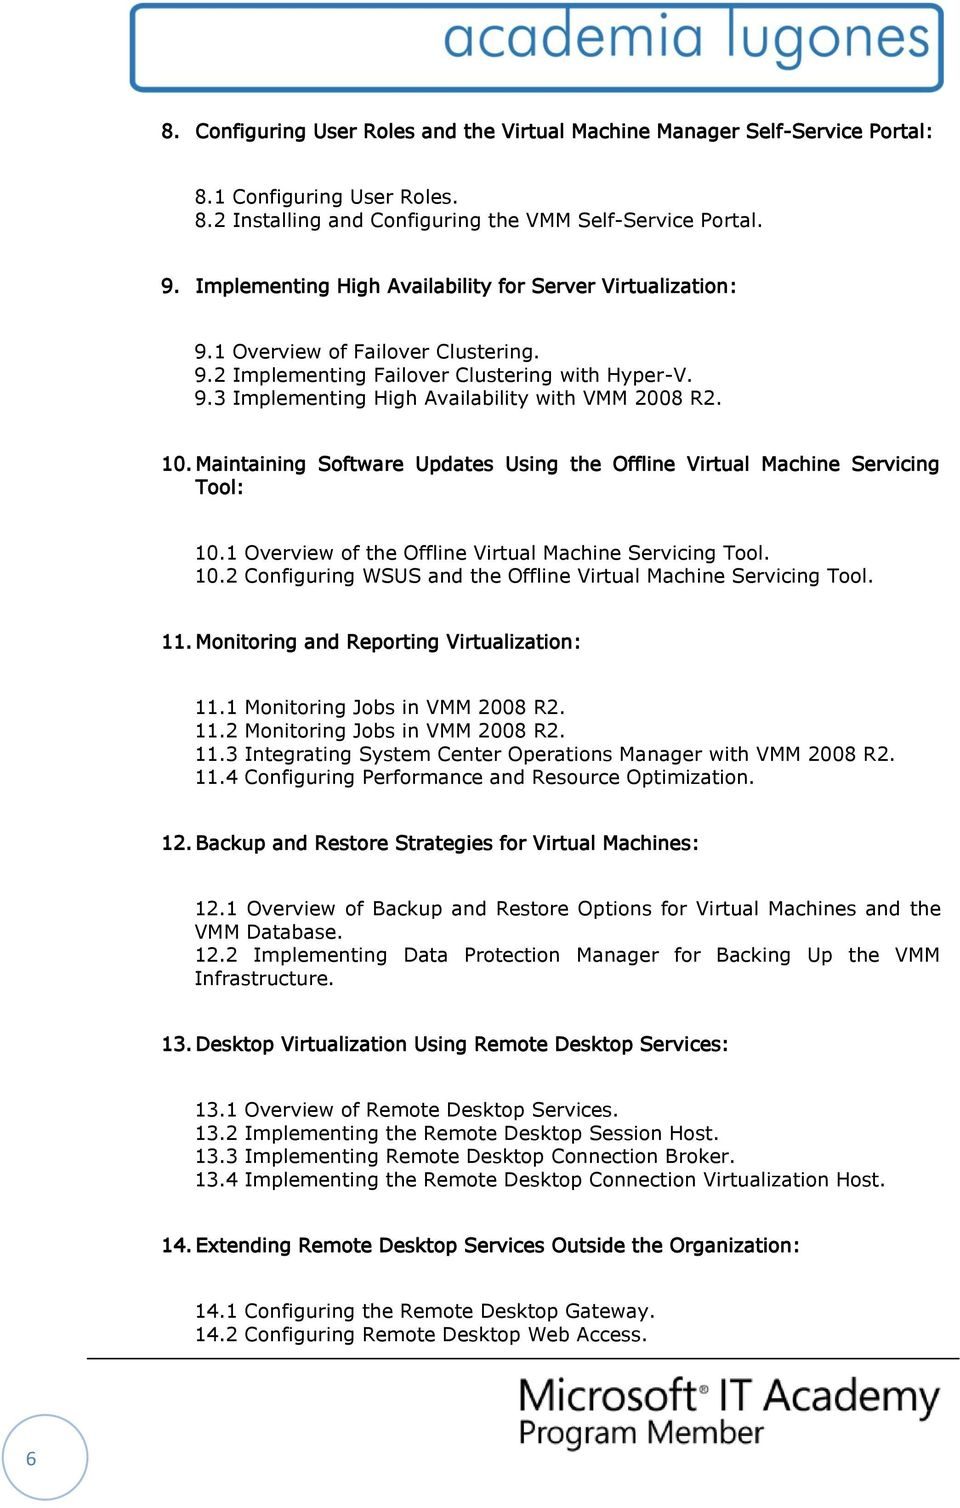 10. Maintaining Software Updates Using the Offline Virtual Machine Servicing Tool: 10.1 Overview of the Offline Virtual Machine Servicing Tool. 10.2 Configuring WSUS and the Offline Virtual Machine Servicing Tool.